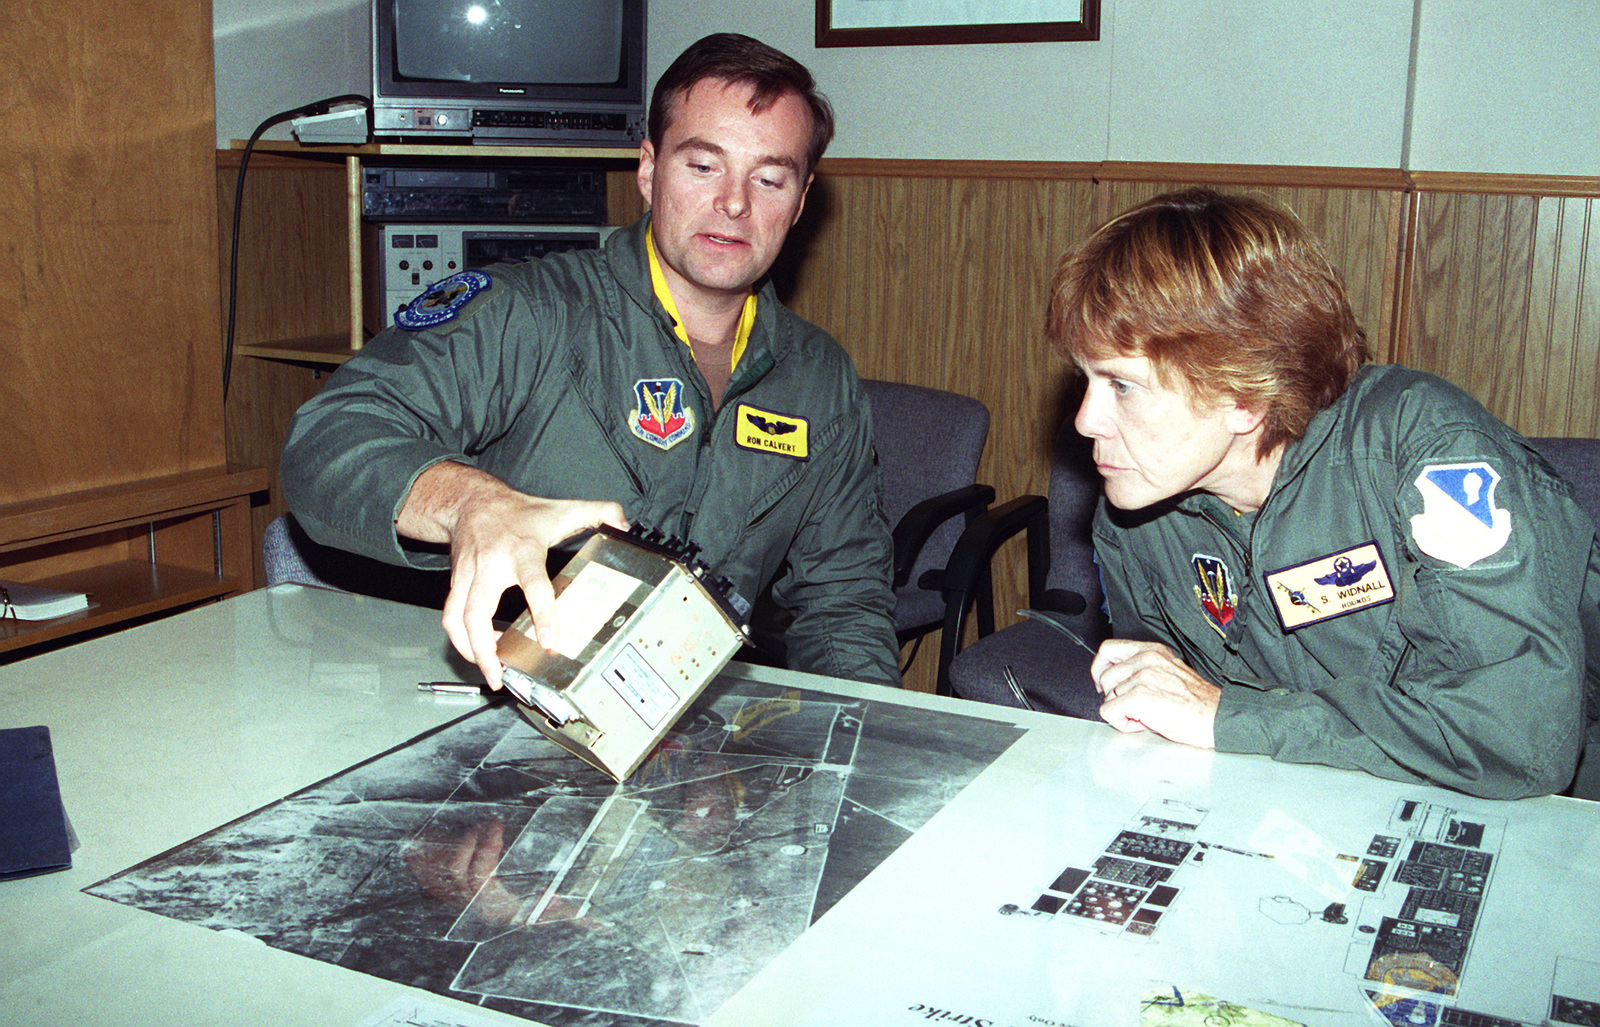 CAPT. Ron Calvert, 27th Fighter Wing, 524th Fighter Squadron, gives Dr. Sheila Widnall, Secretary of the Air Force some preflight instruction before her incentive flight in an F-111